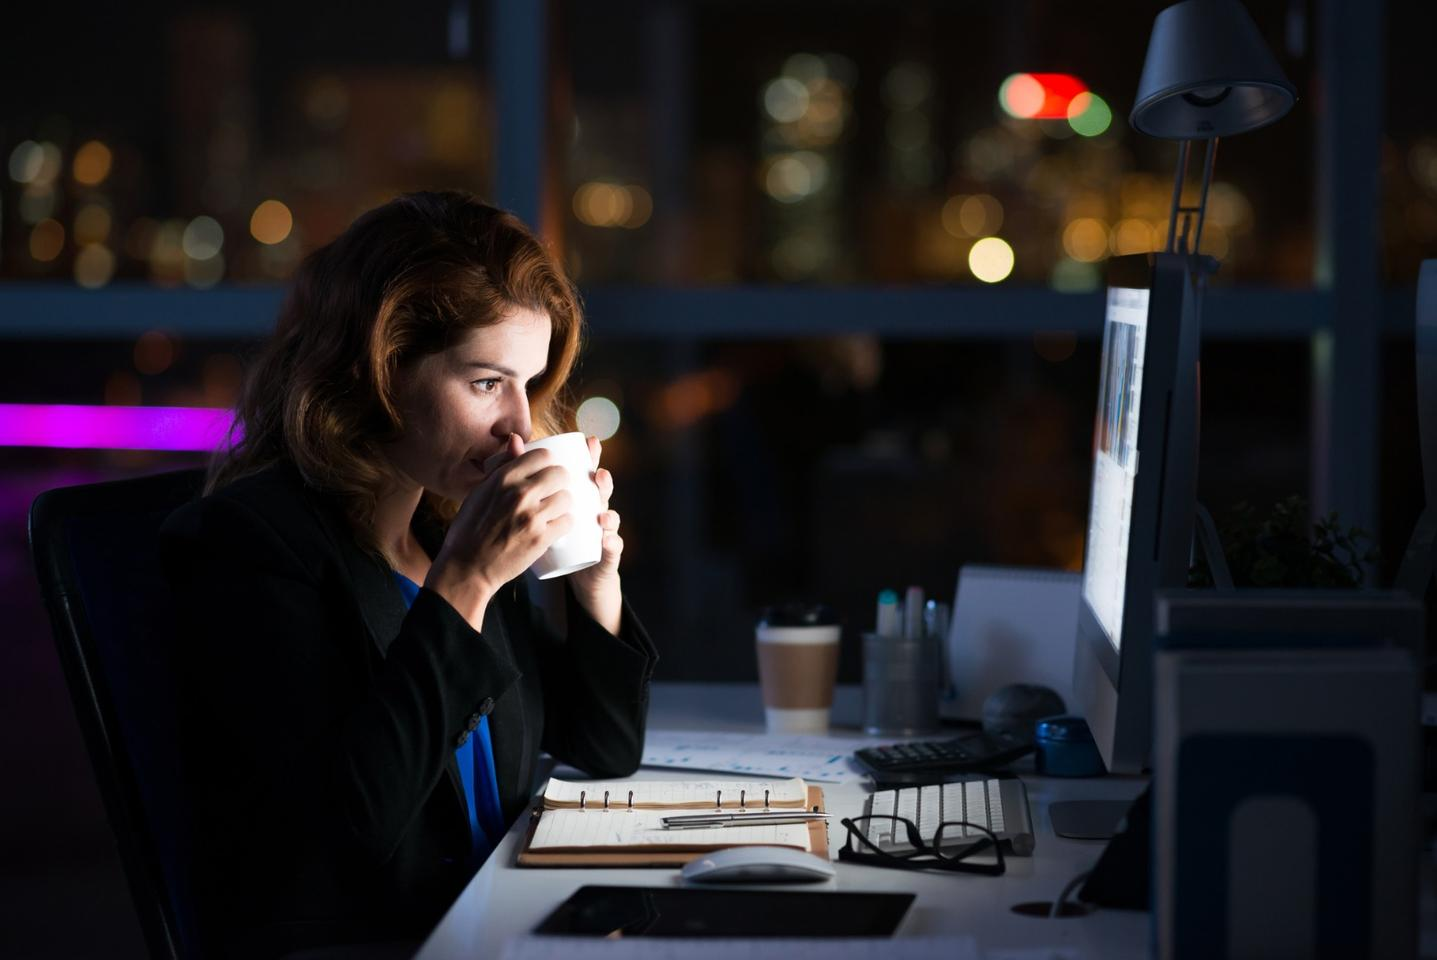 Pulling just one all-nighter can disrupt levels of proteins in the blood known to influence metabolism, immune function and blood sugar